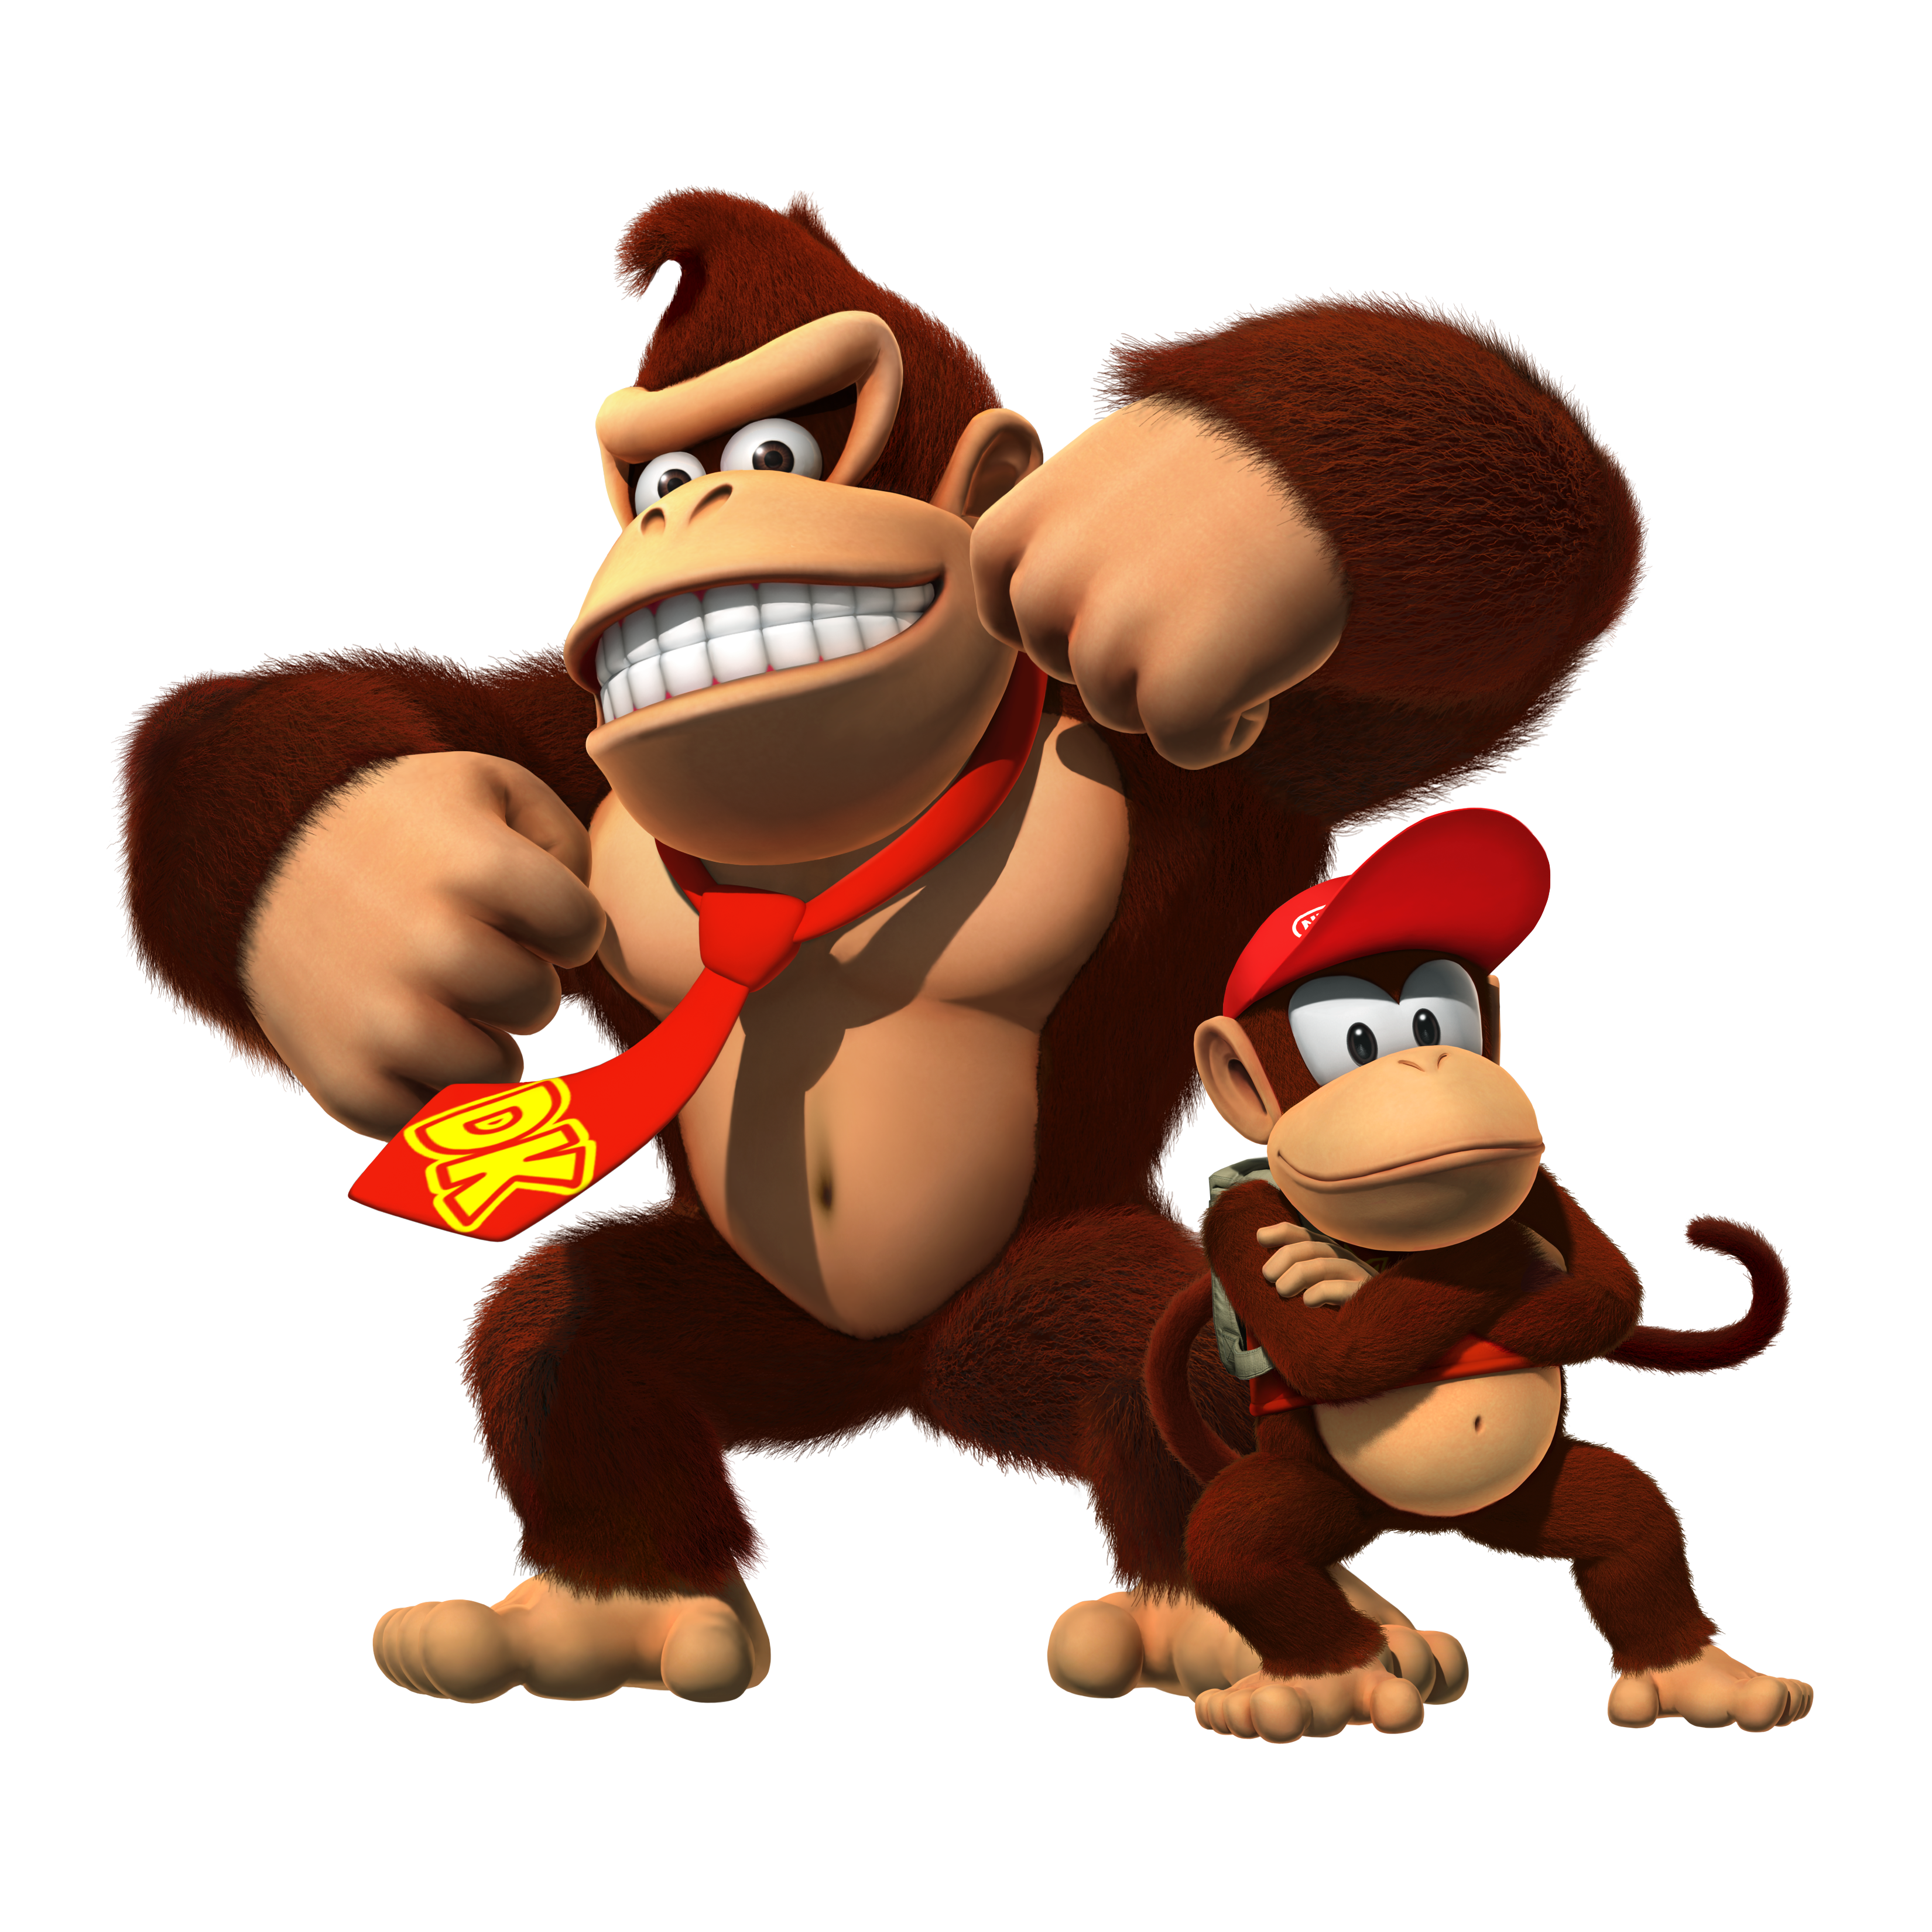 Dk country png. Donkey kong returns discussion